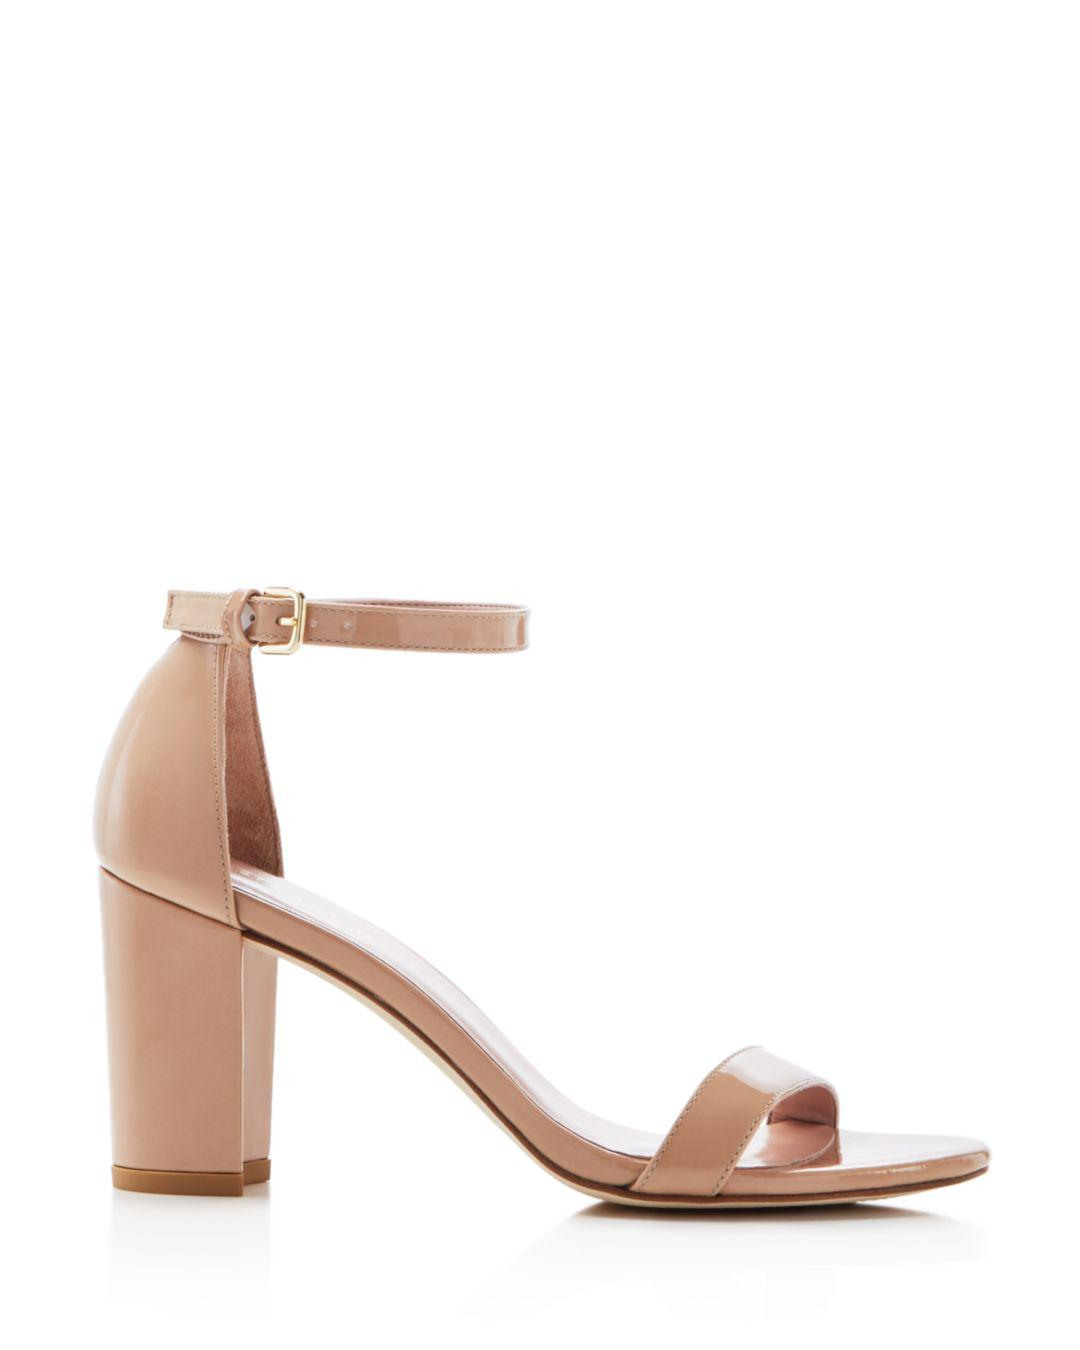 72d067bec7a3 Lyst - Stuart Weitzman Women s Nearlynude Ankle Strap Sandals